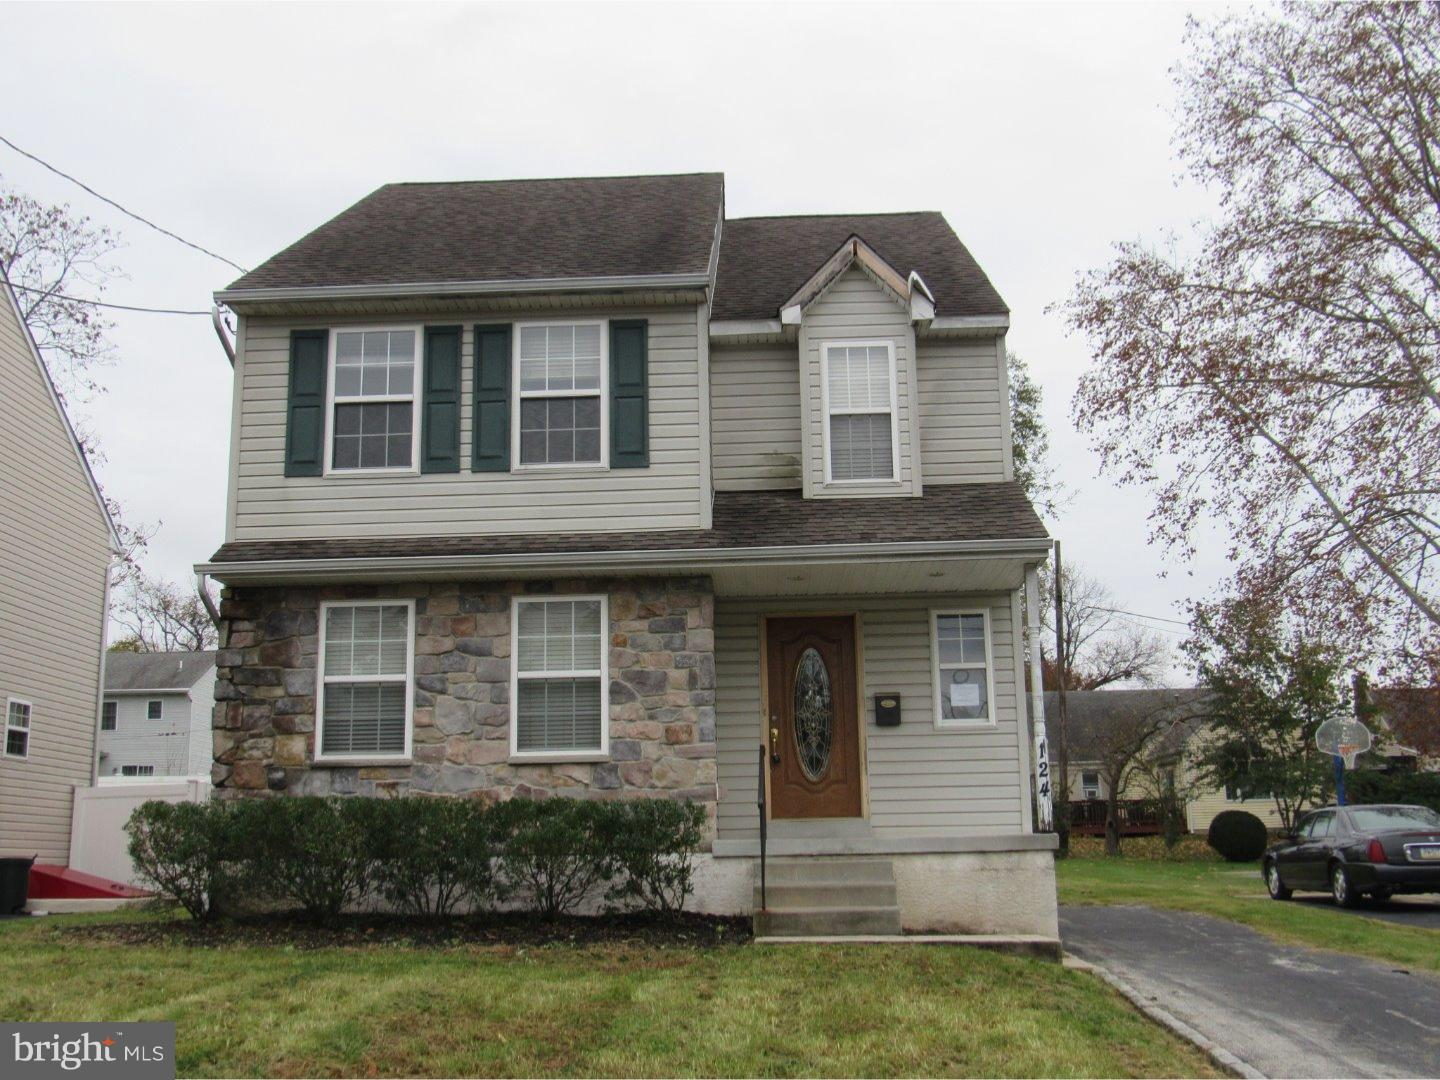 124 7TH AVENUE, FOLSOM, PA 19033